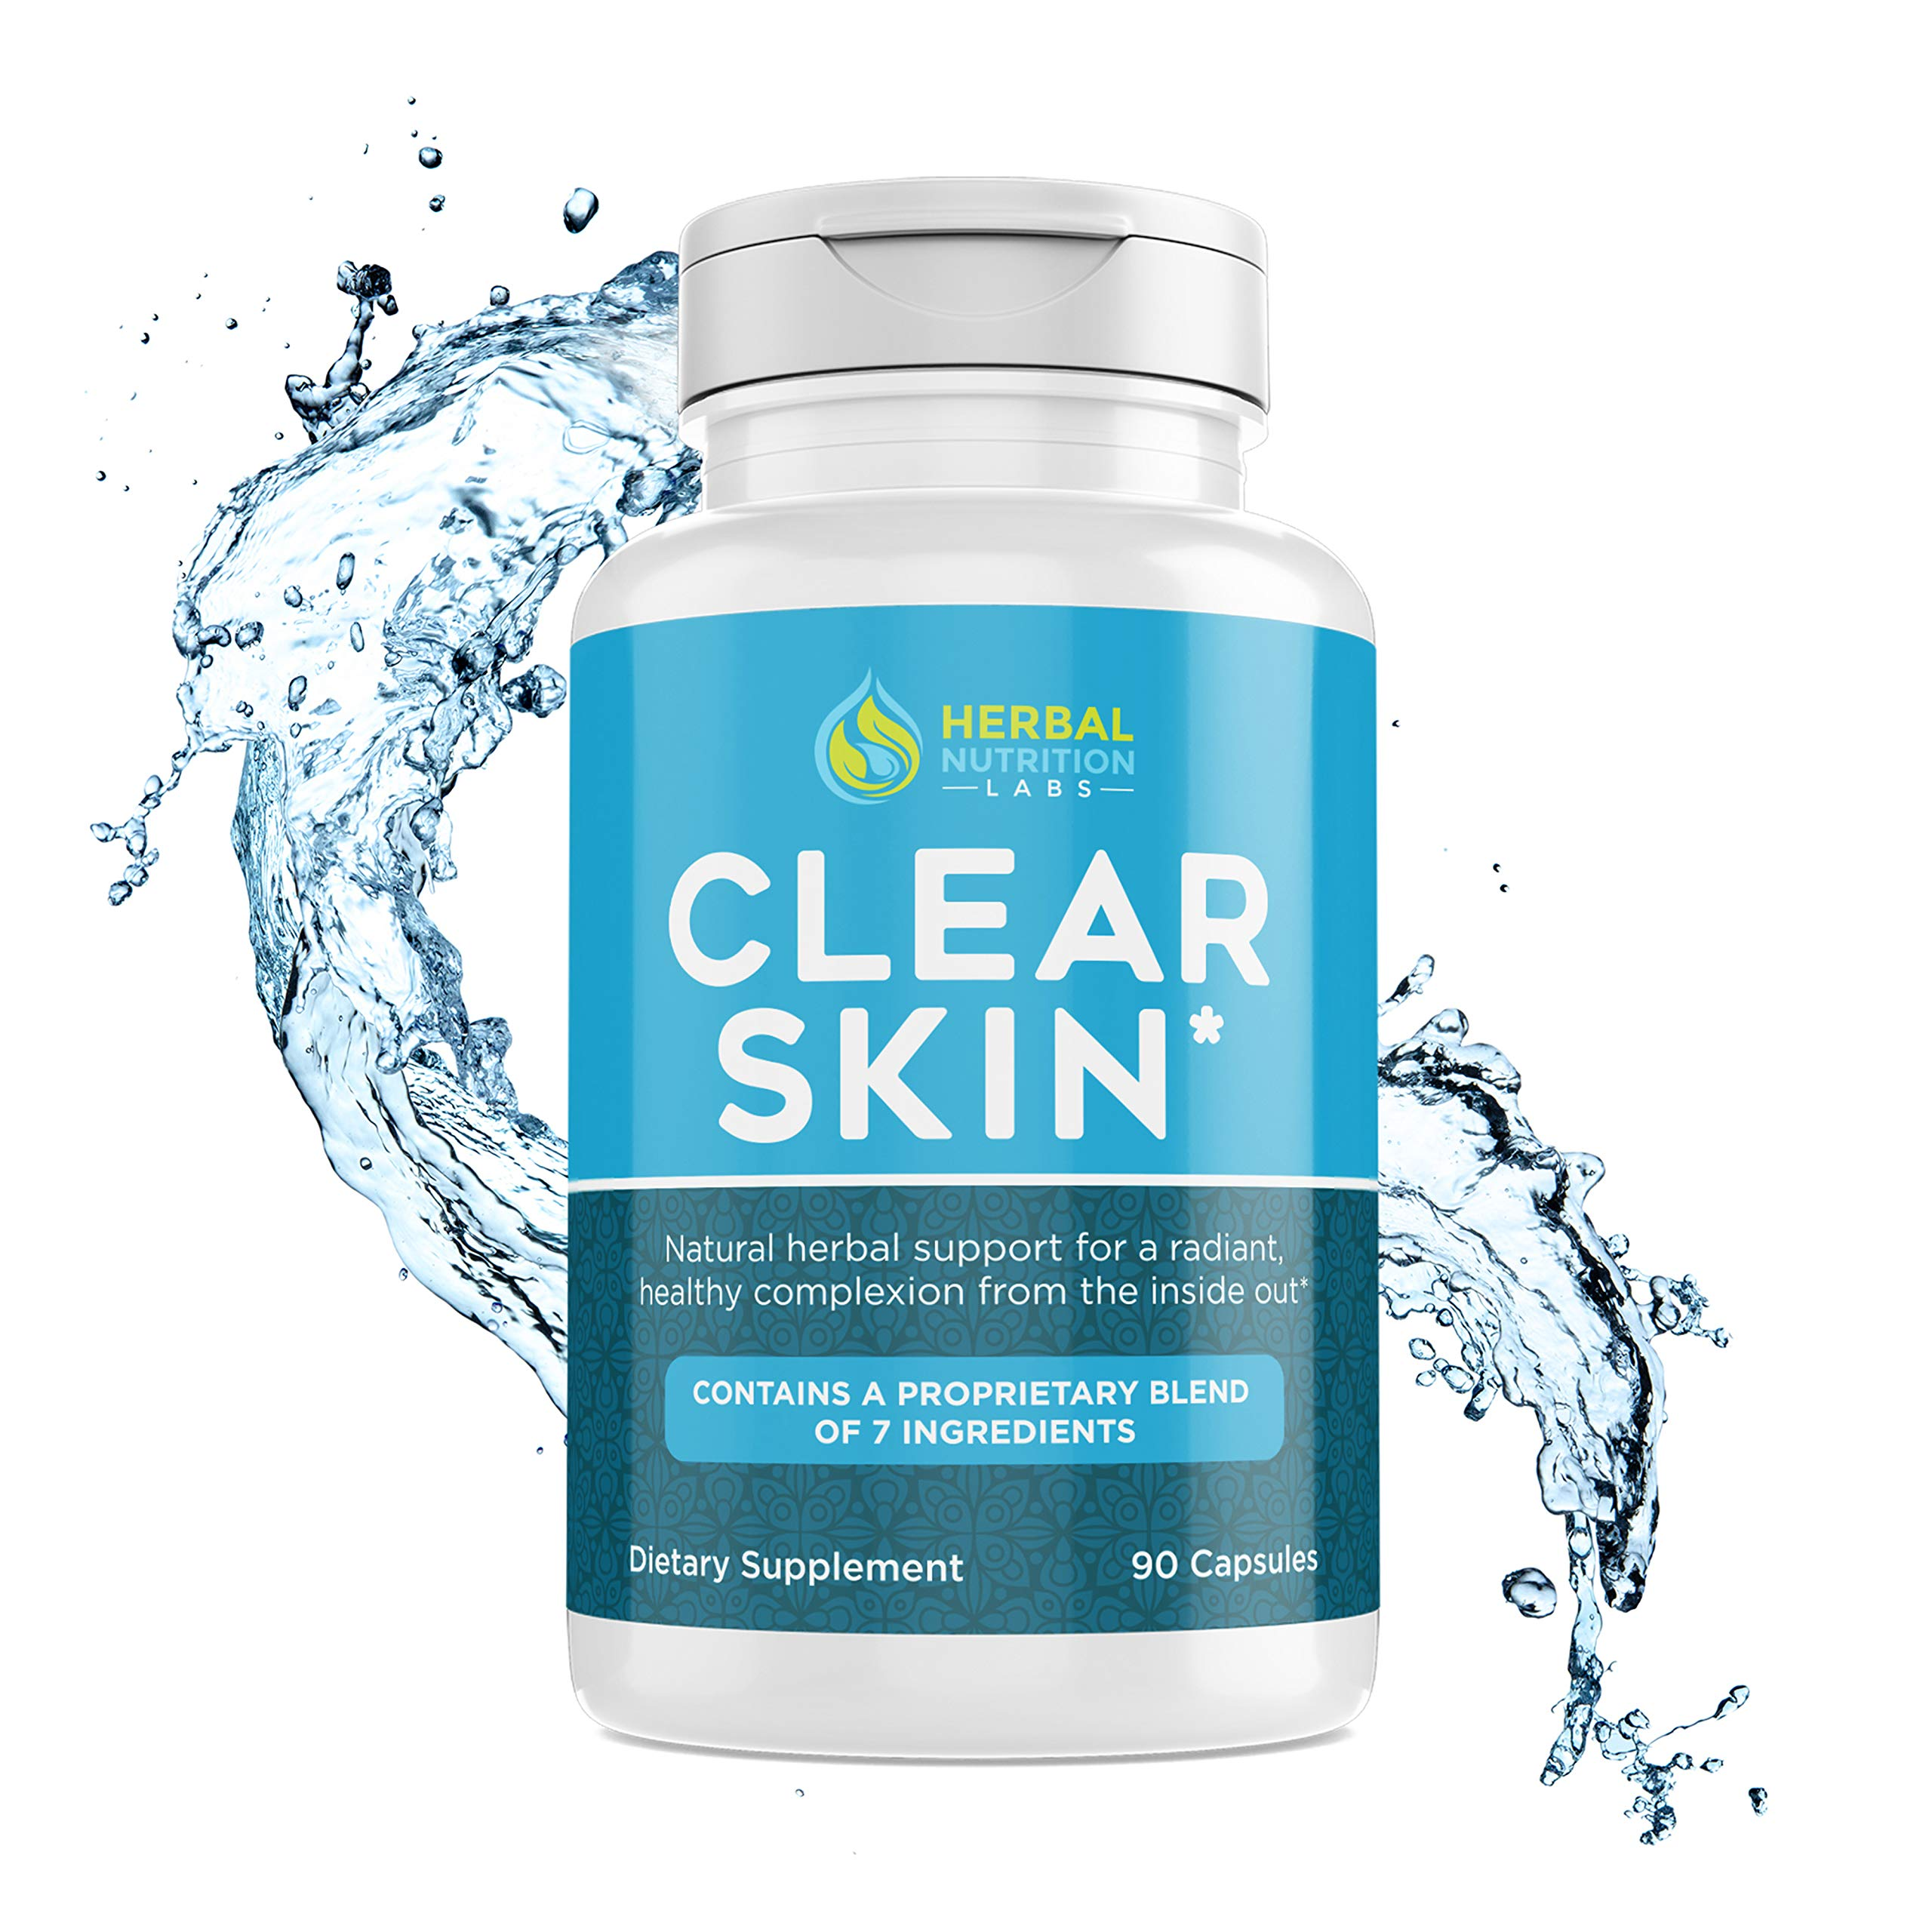 Cystic Acne Supplement for Women   Quickly Drys Up Painful Hormonal Acne On Your Face and Chin   All Natural   No Side Effects   Made USA